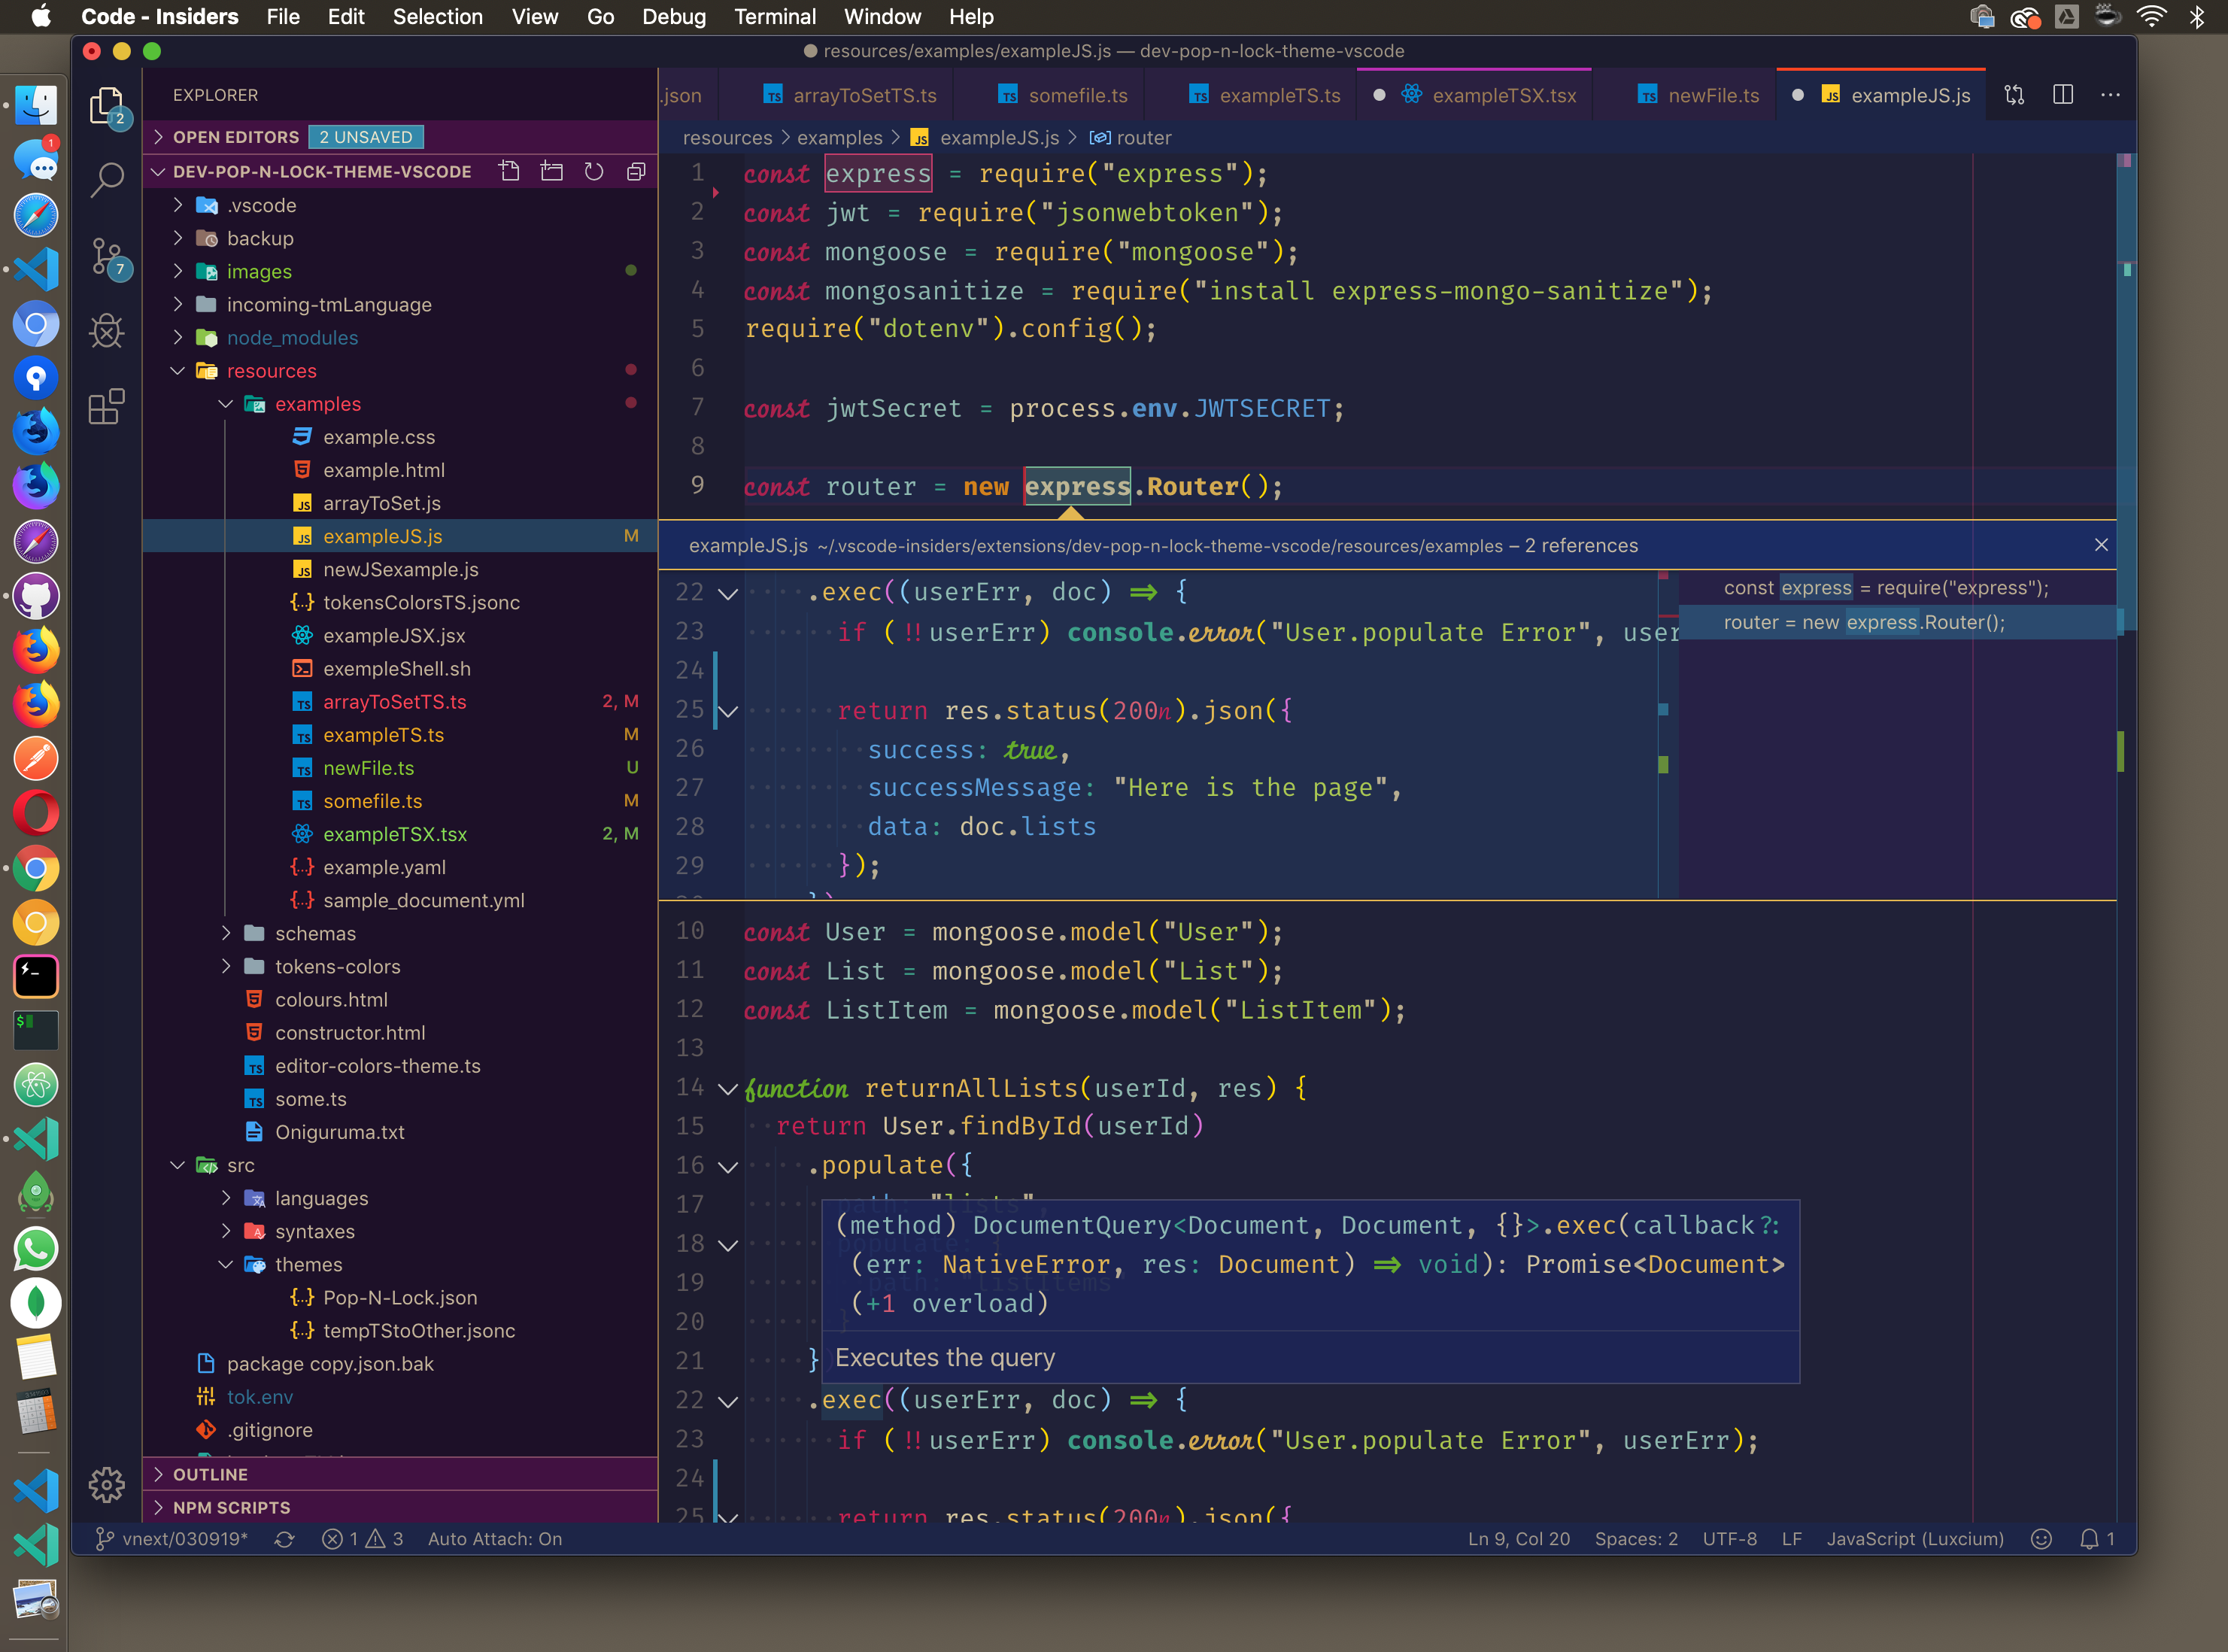 [Preview of the IDE with Pop N' Lock Theme]